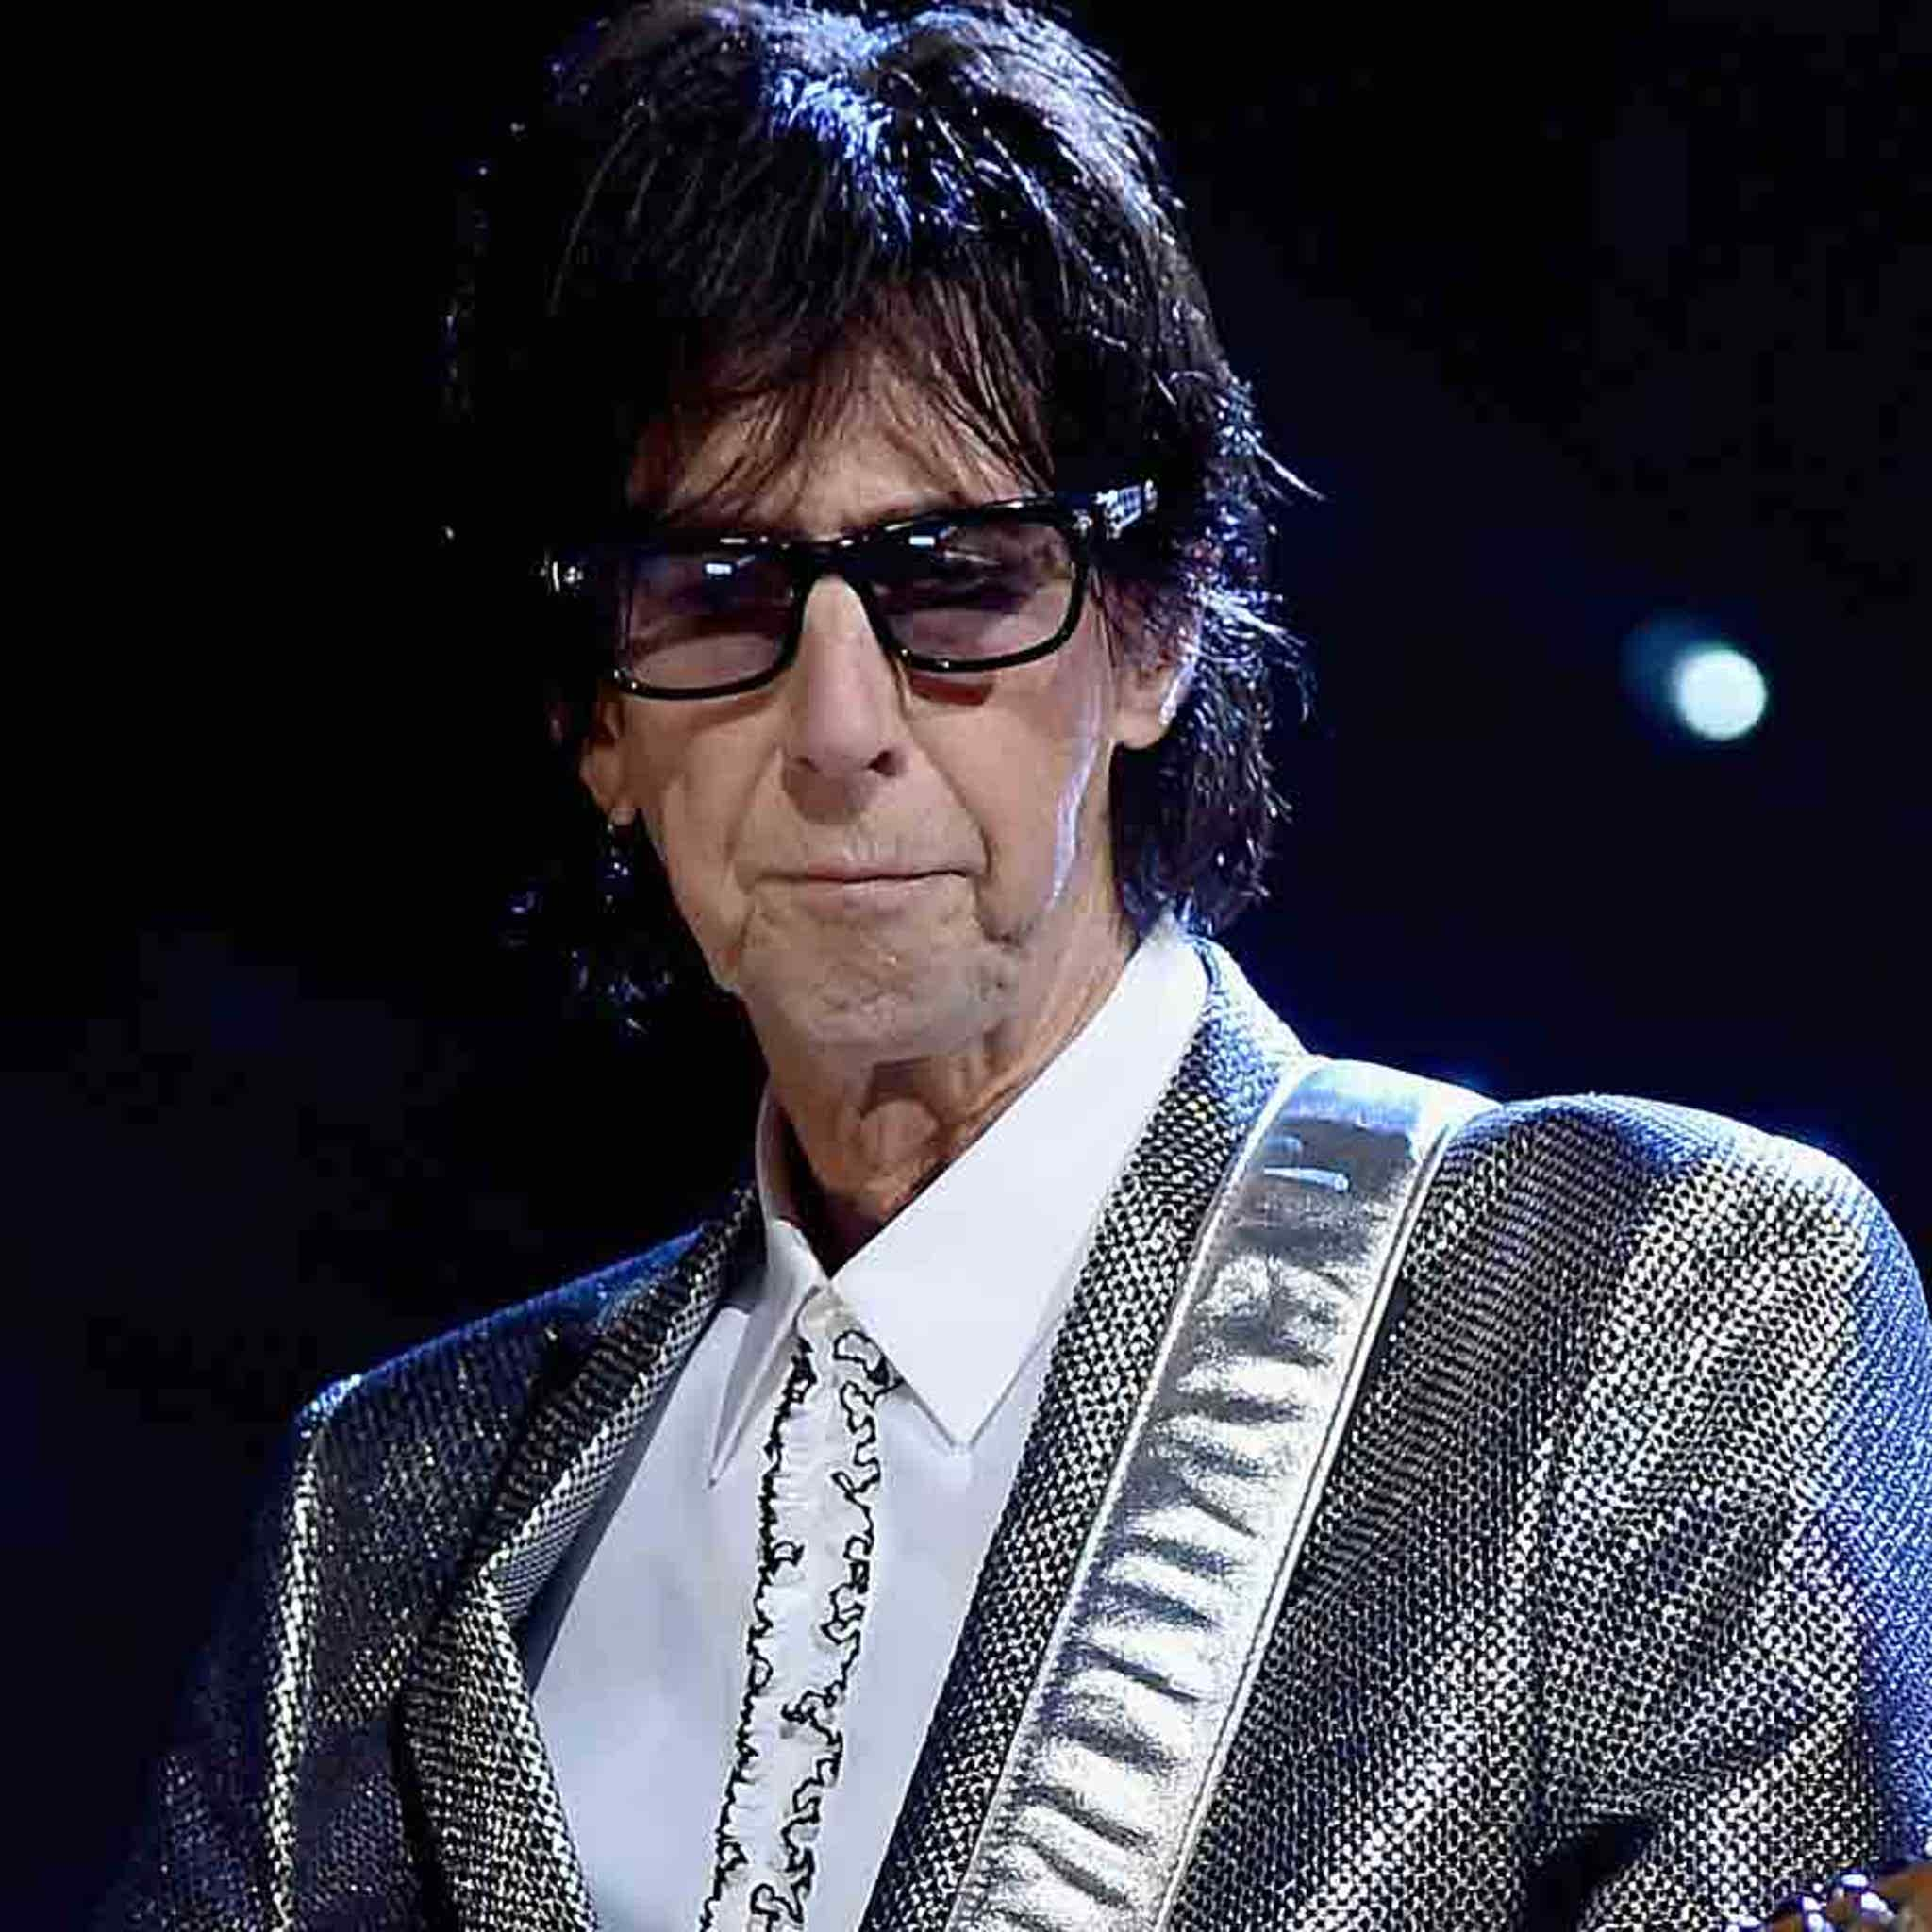 The Cars Frontman Ric Ocasek Died of Heart Disease